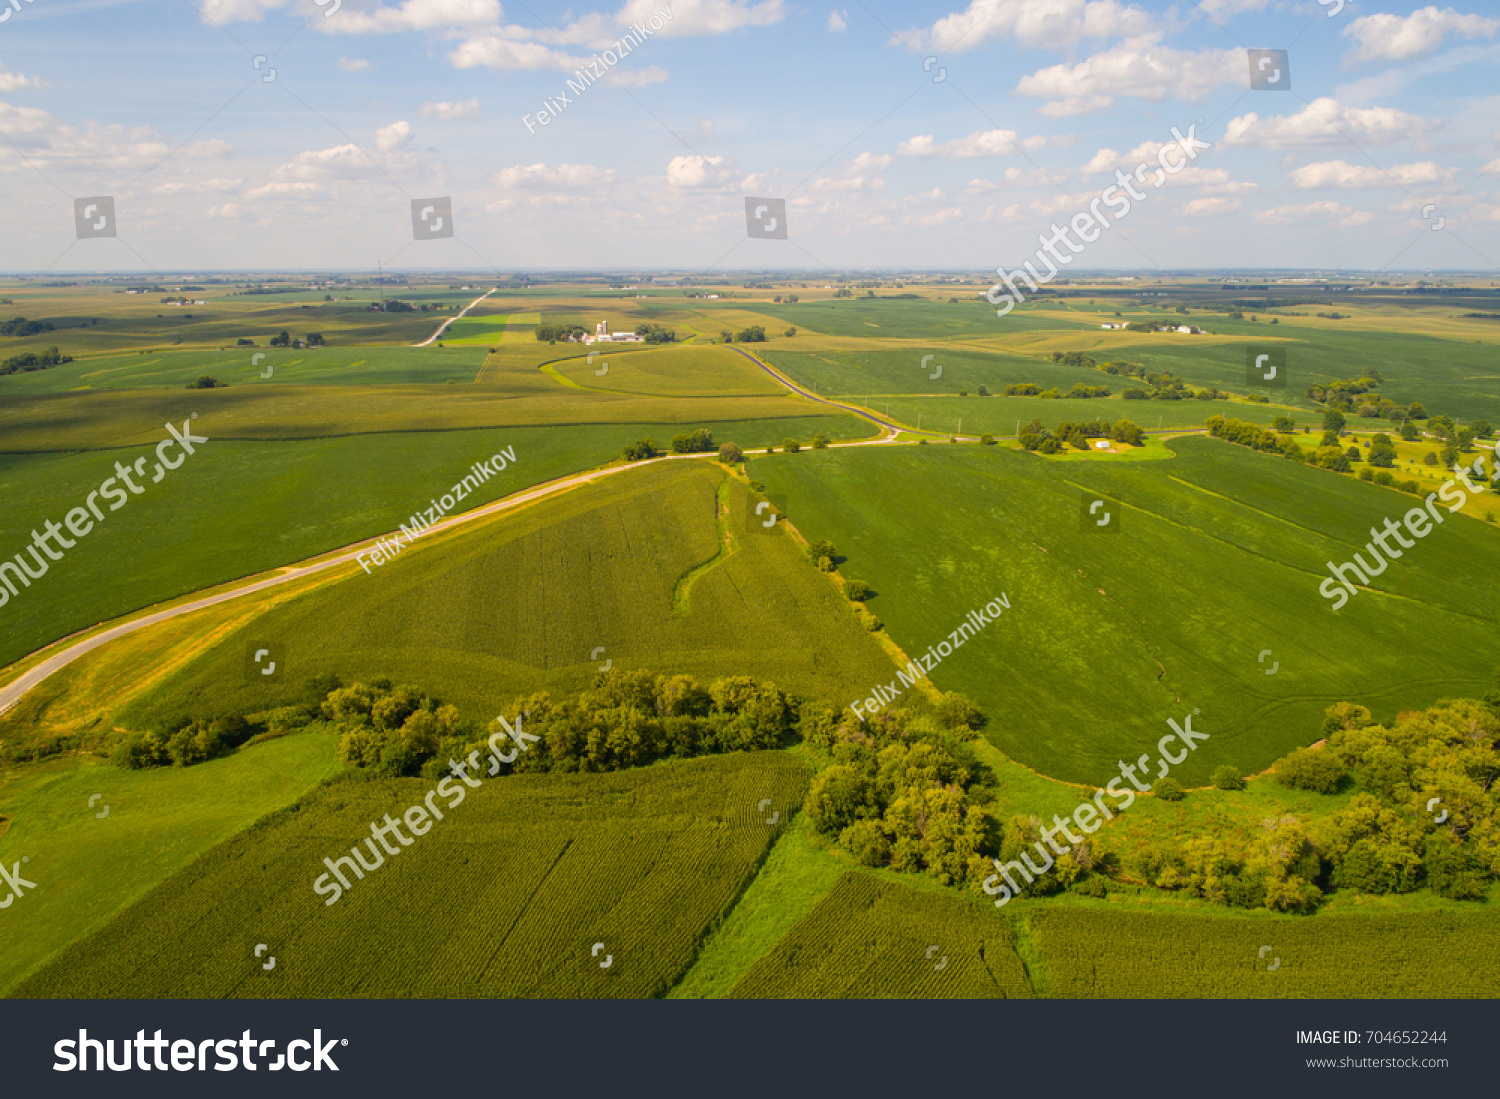 Aerial drone image of farmland landscape in Iowa USA